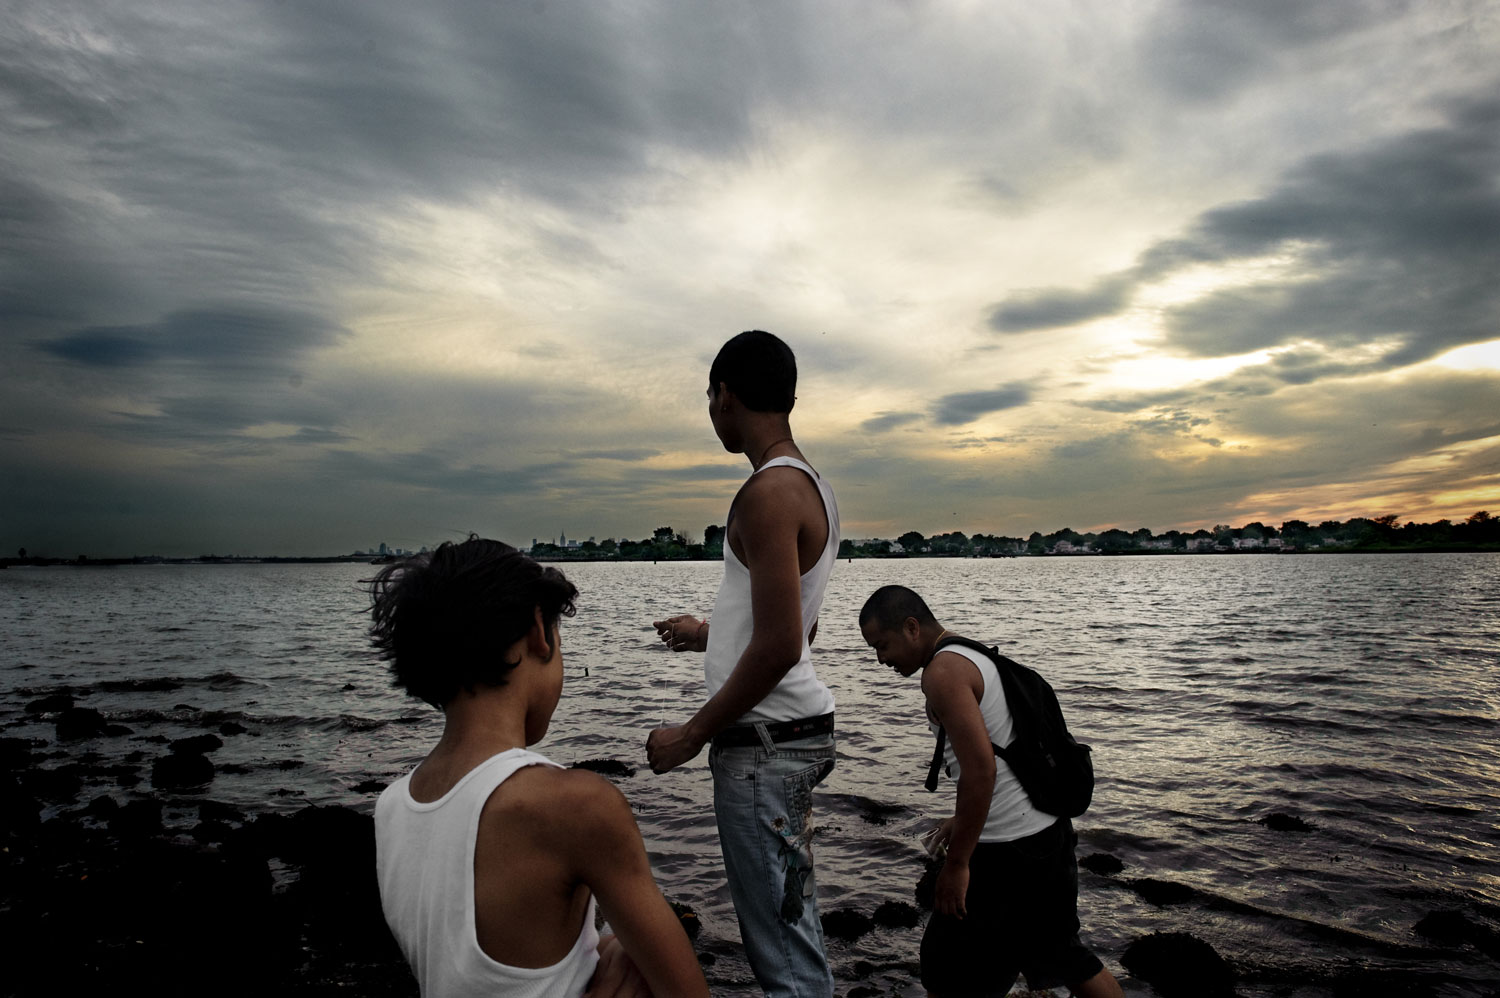 Bronx, New York City, September 2011.From left to right, Joshua Vatthnavong, 11, Joey Vatthanavong, 16, and Sanet Kek, 28, fish without poles at Ferry Point Park in the Bronx.